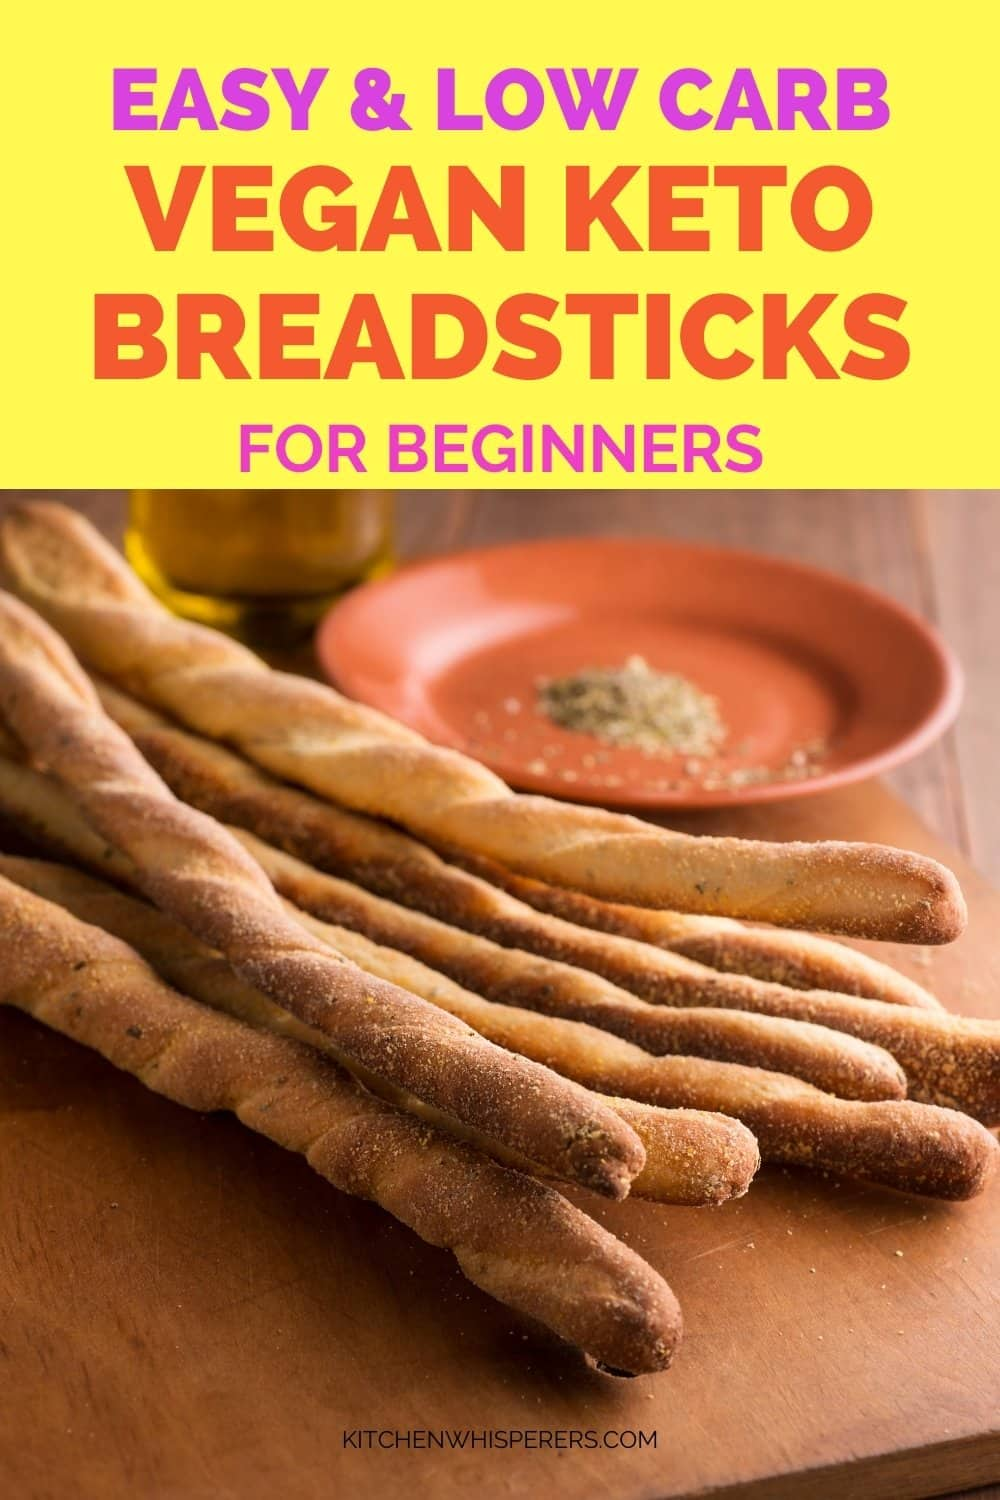 Vegan Keto Breadsticks